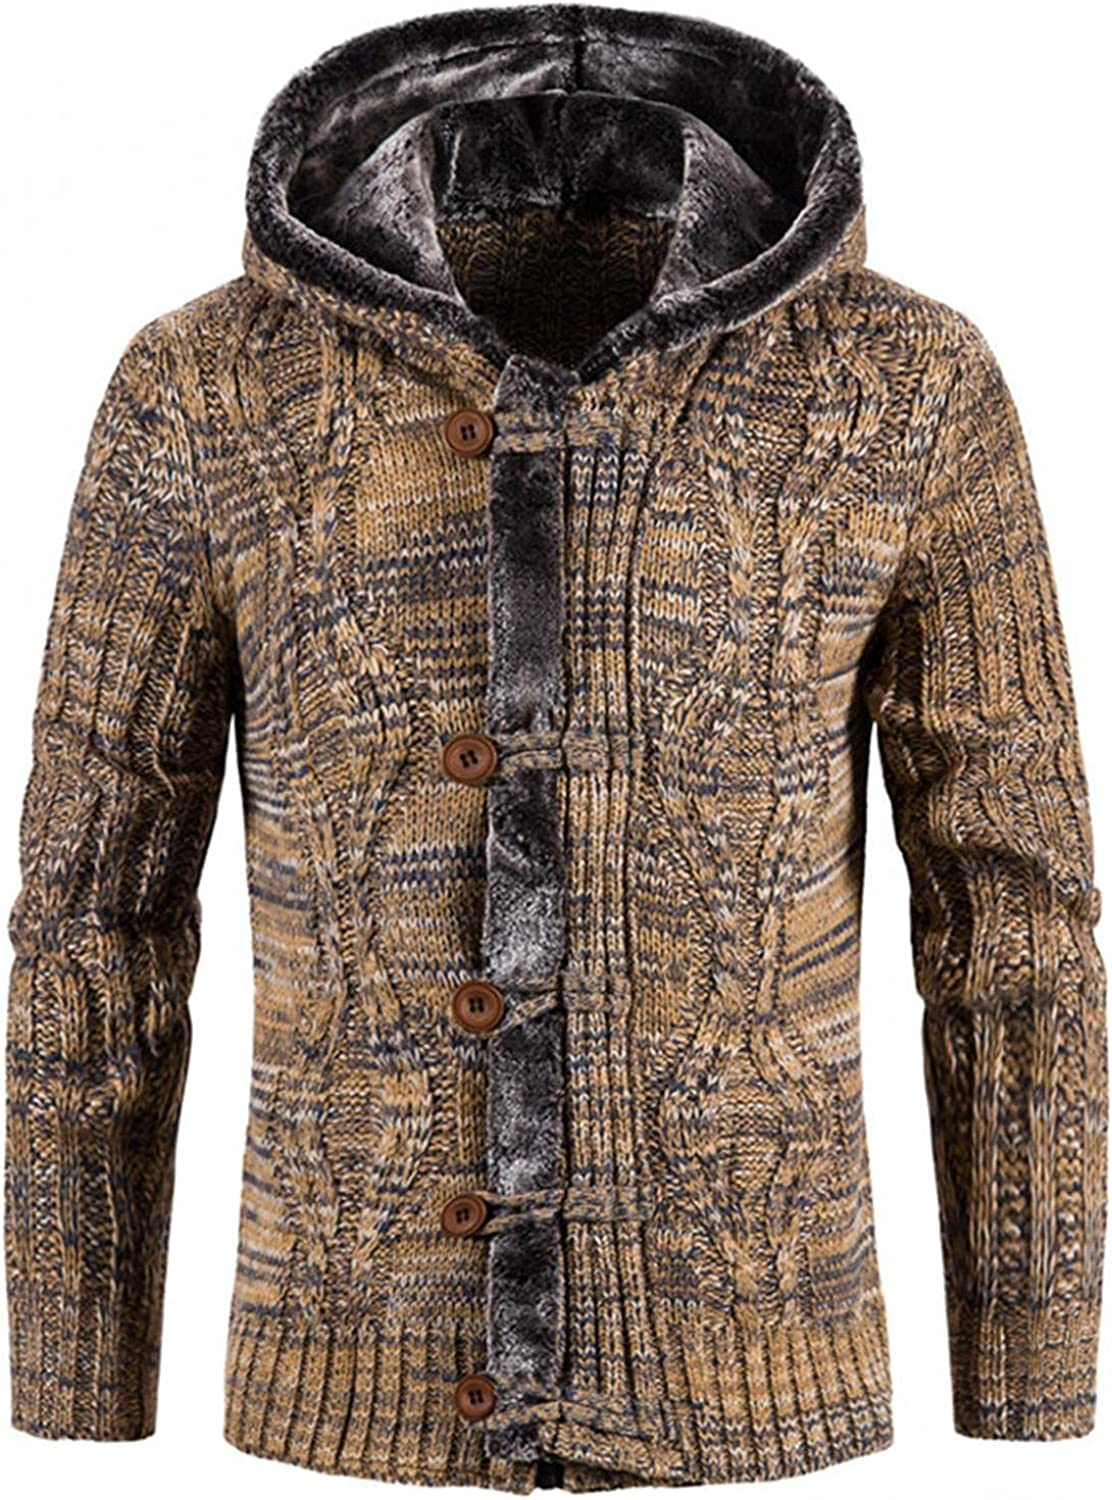 Hoodies for Men Mens Autumn Hoodies Plus Fleece Long Sleeve Hooded Sweater Jackets Old Style Clearance High Discount Sweater